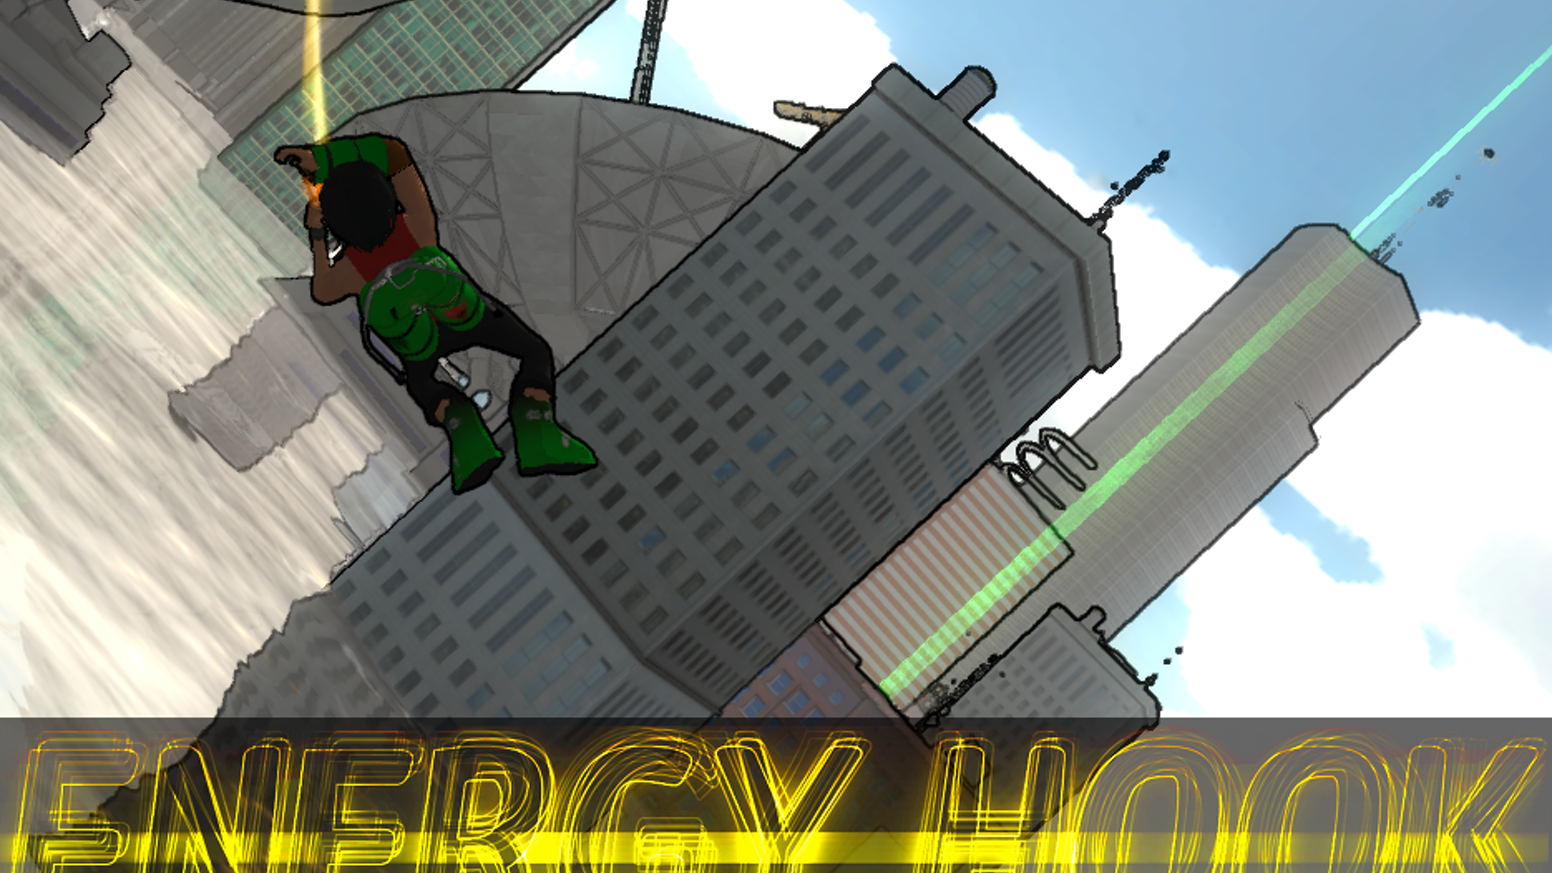 Energy Hook is a grapple-and-swing-and-run-on-walls-for-style game by Jamie Fristrom, creator of the Spider-Man 2 game.